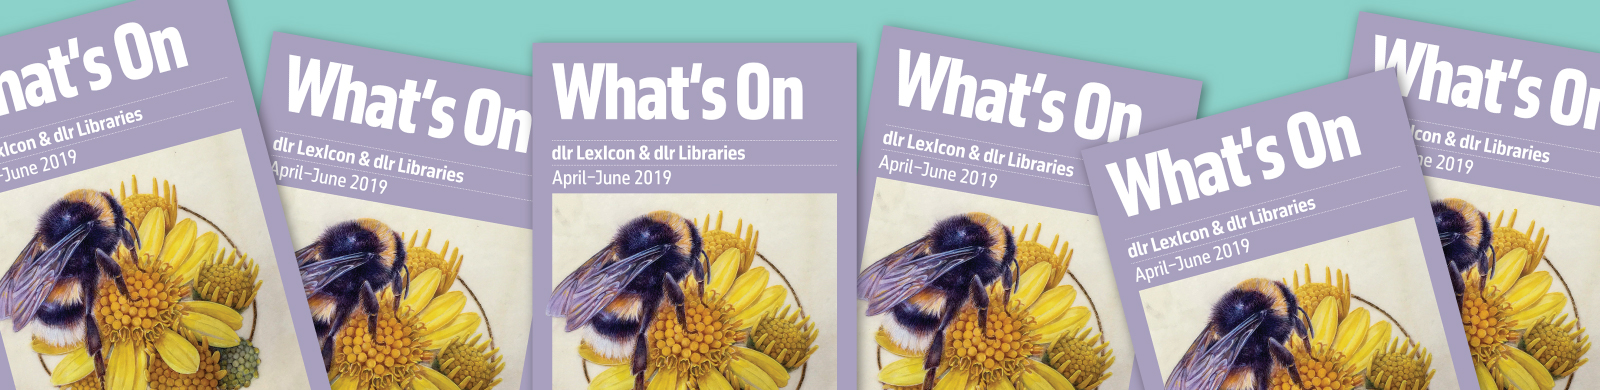 What's On: April-June 2019